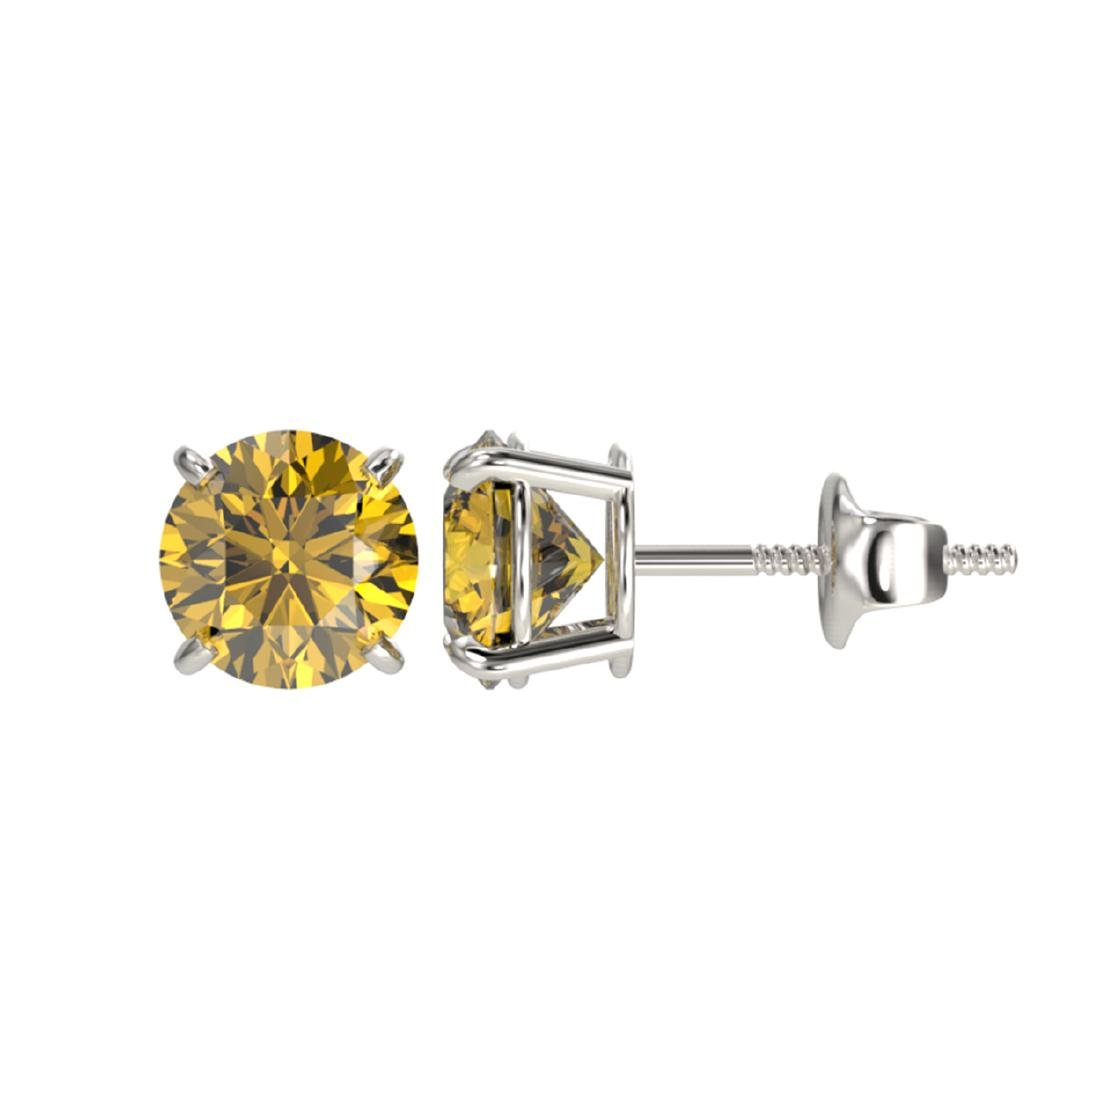 1.54 ctw Intense Yellow Diamond Stud Earrings 10K White - 2